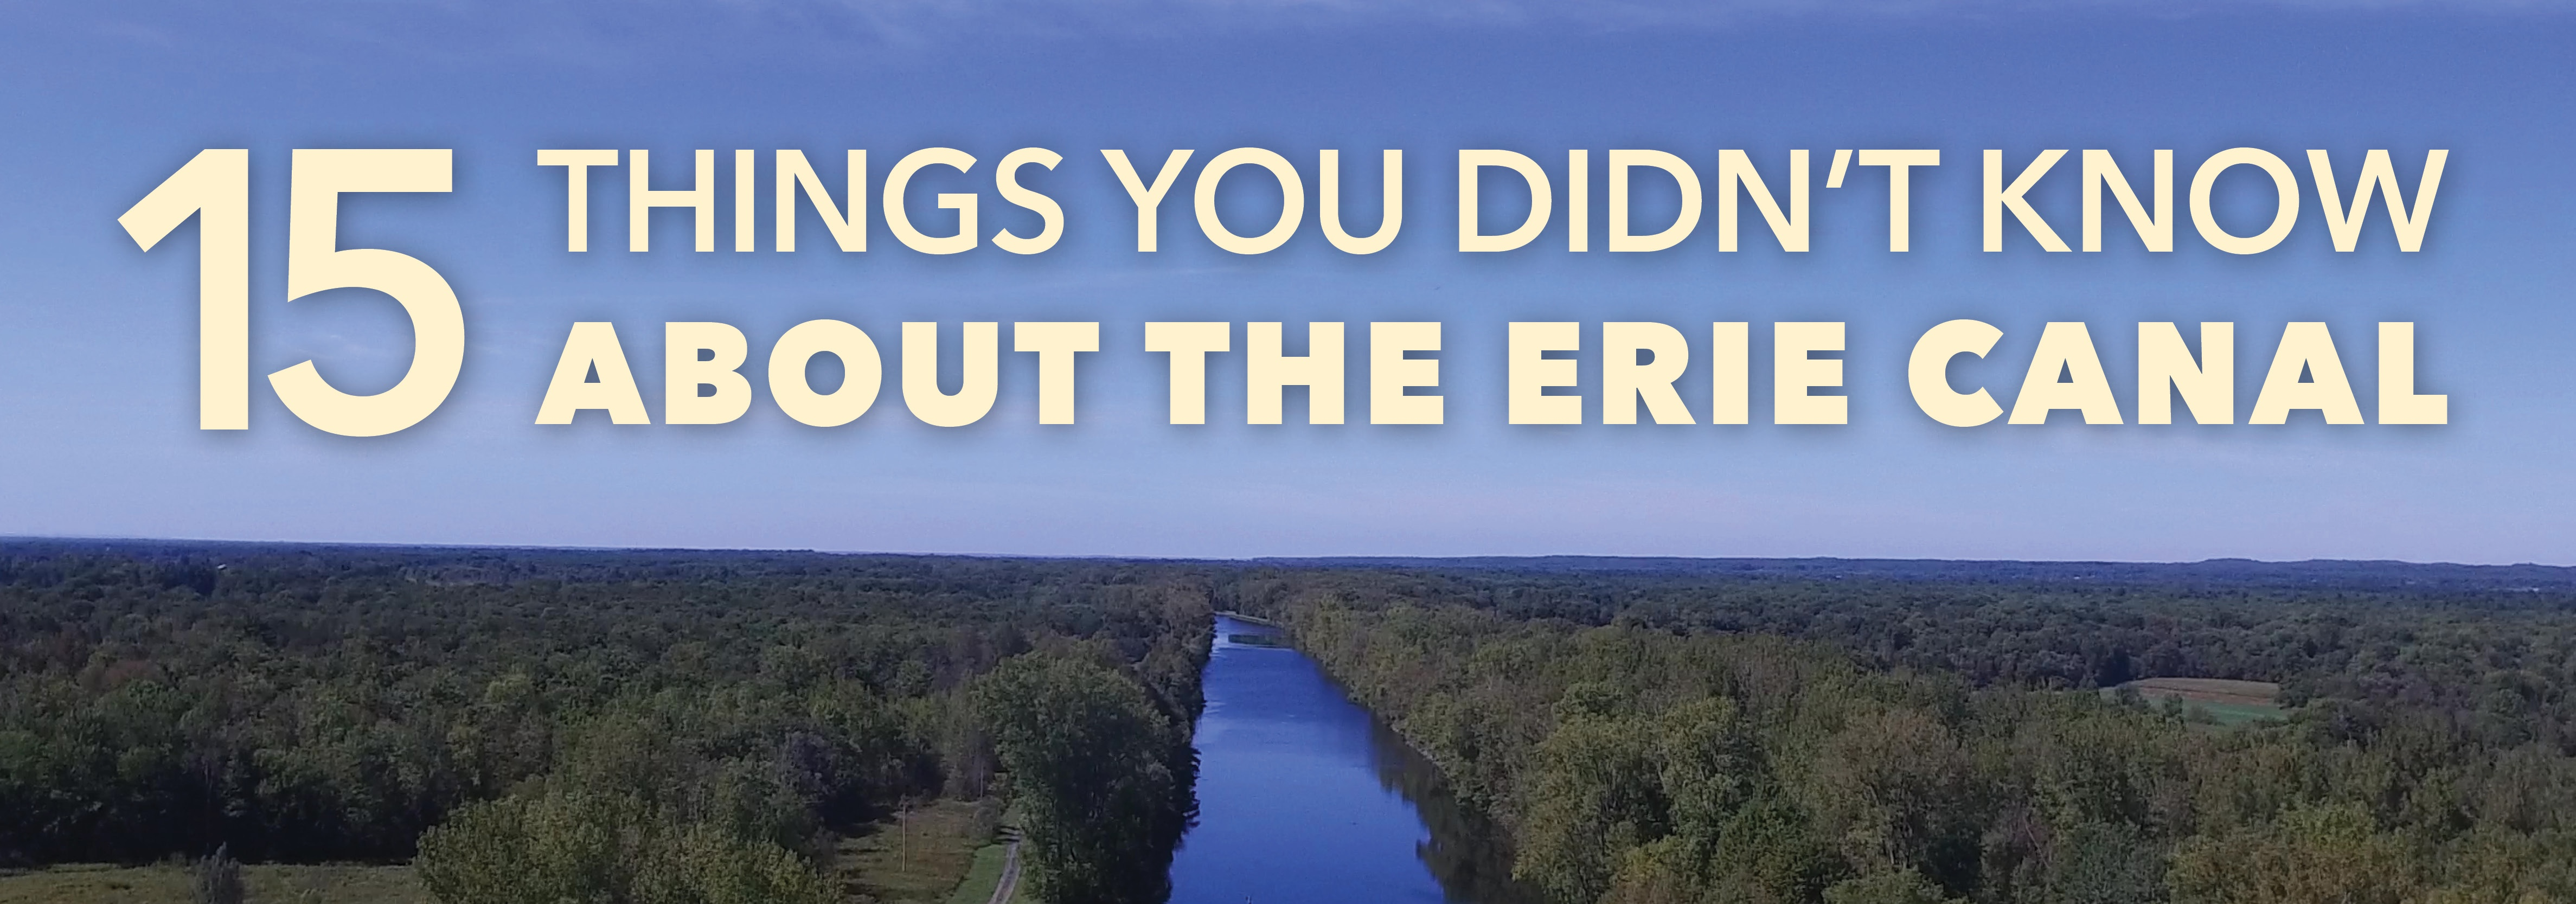 15 Things You Didn't Know About the Erie Canal